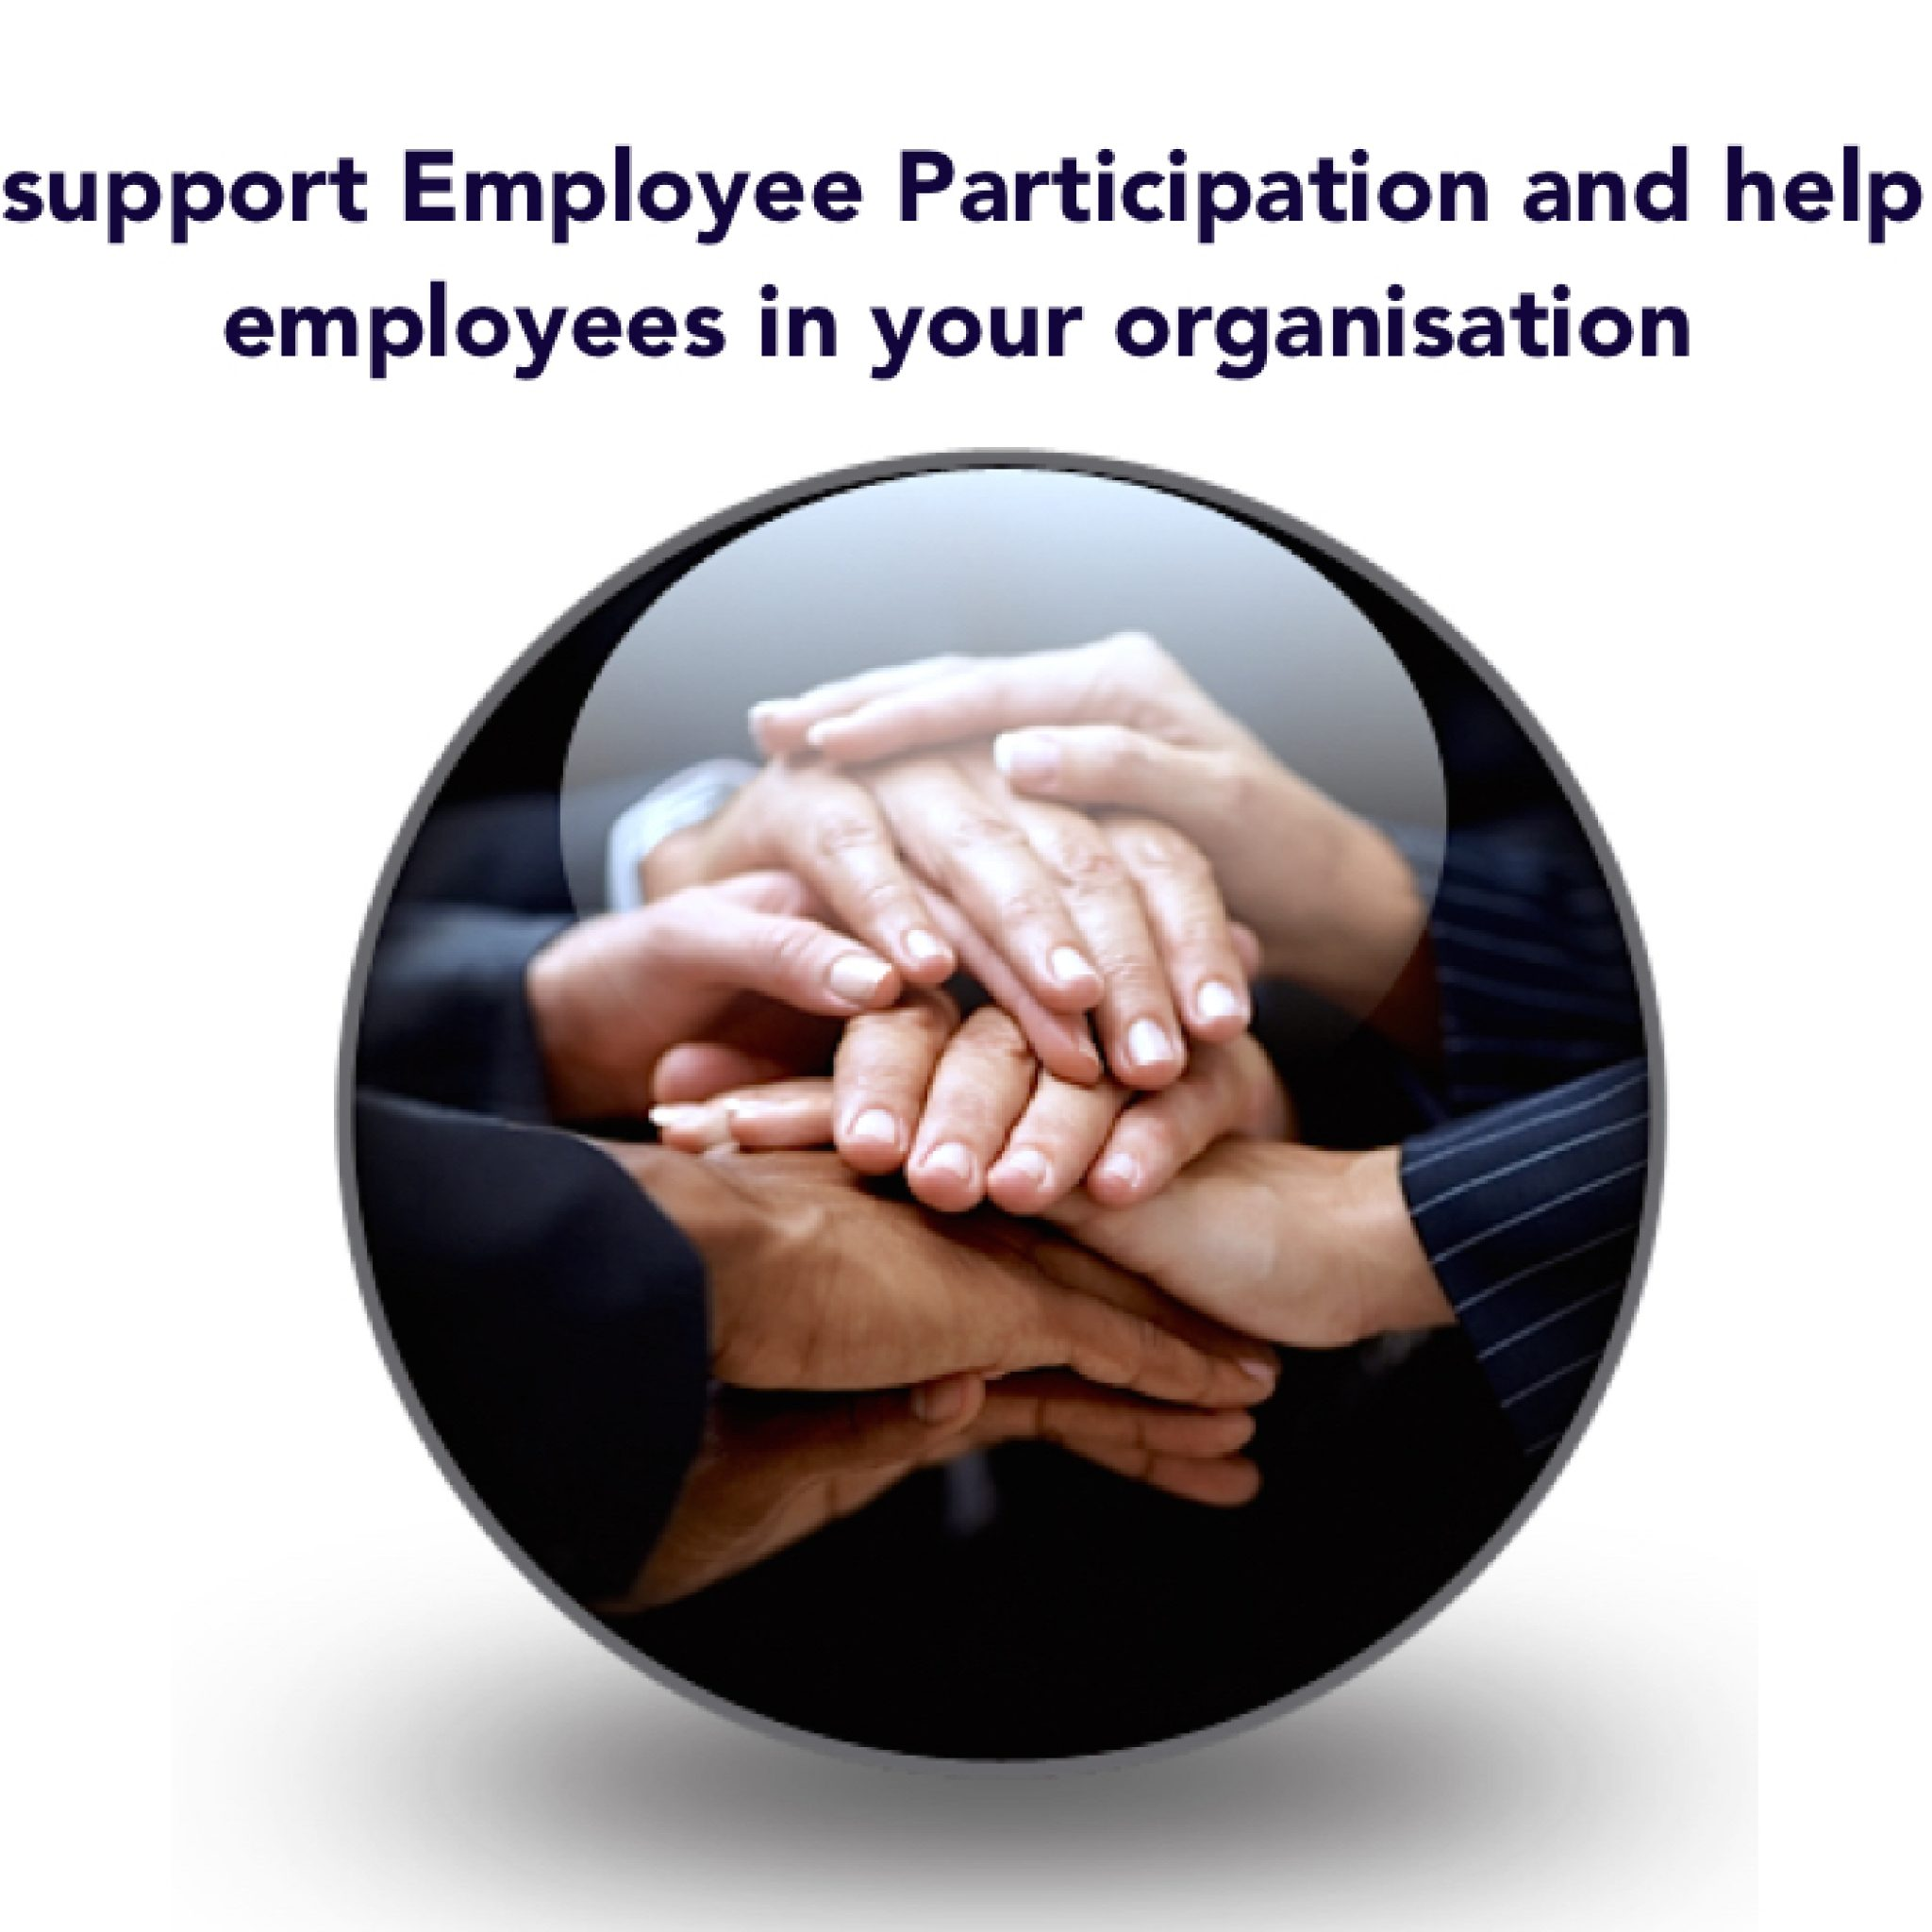 5 strategies to support Employee Participation and help build engaged employees in your organisation